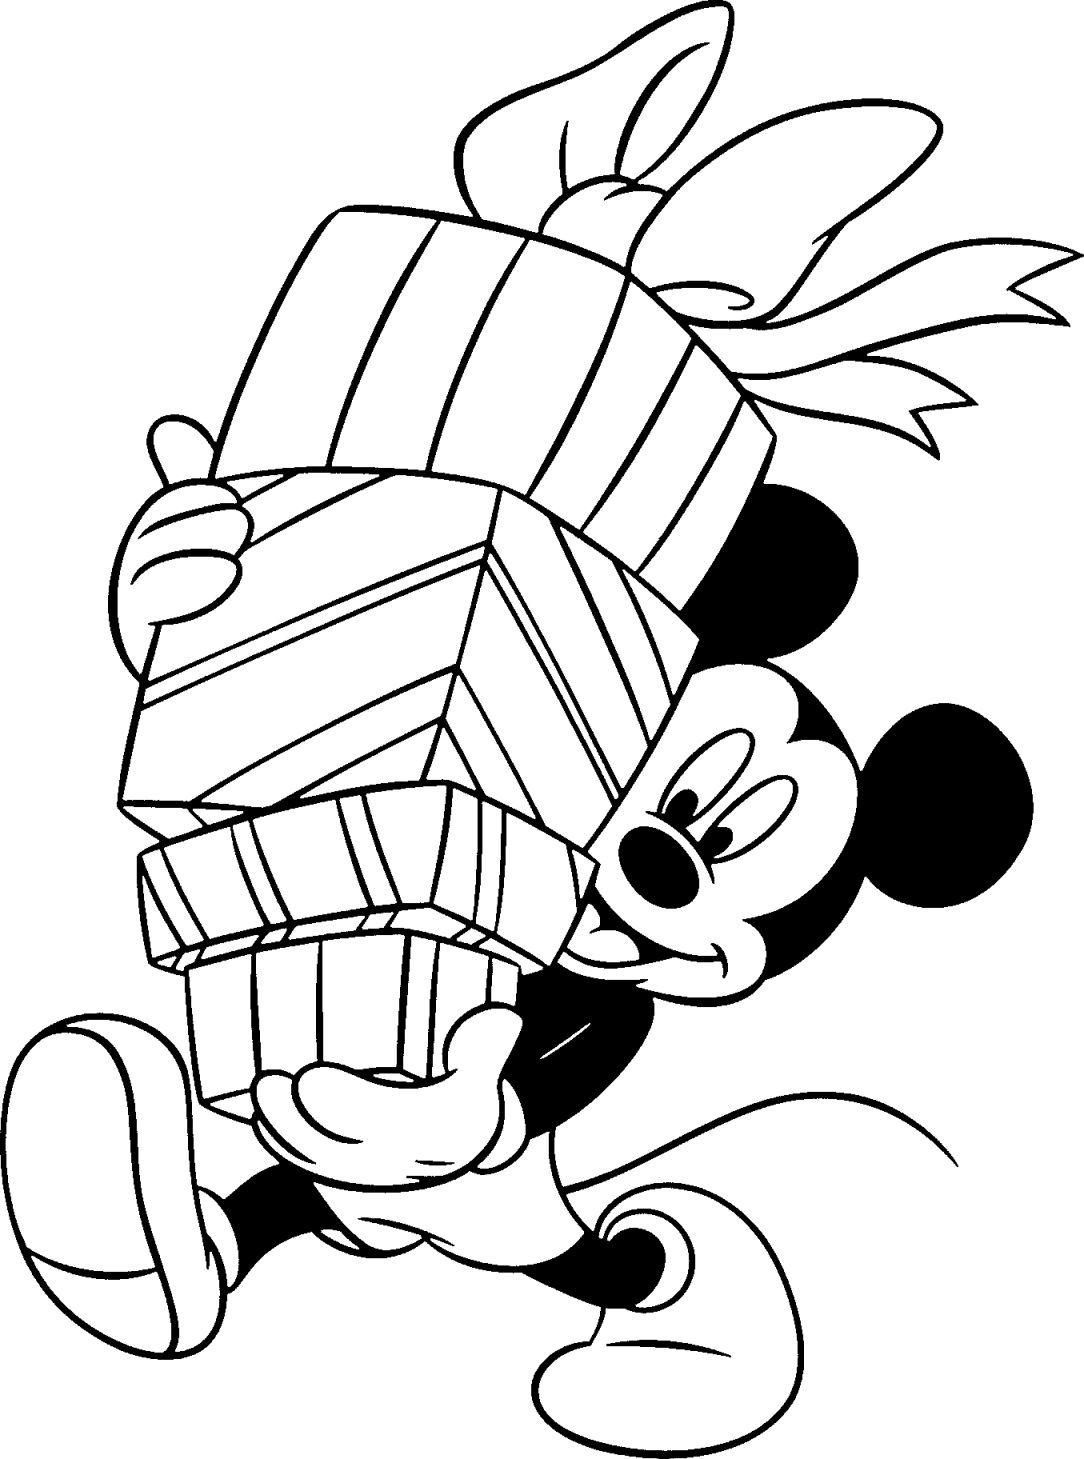 Printable Free Disney Christmas Coloring Pages Free Disney Coloring Pages Cartoon Coloring Pages Mickey Mouse Coloring Pages